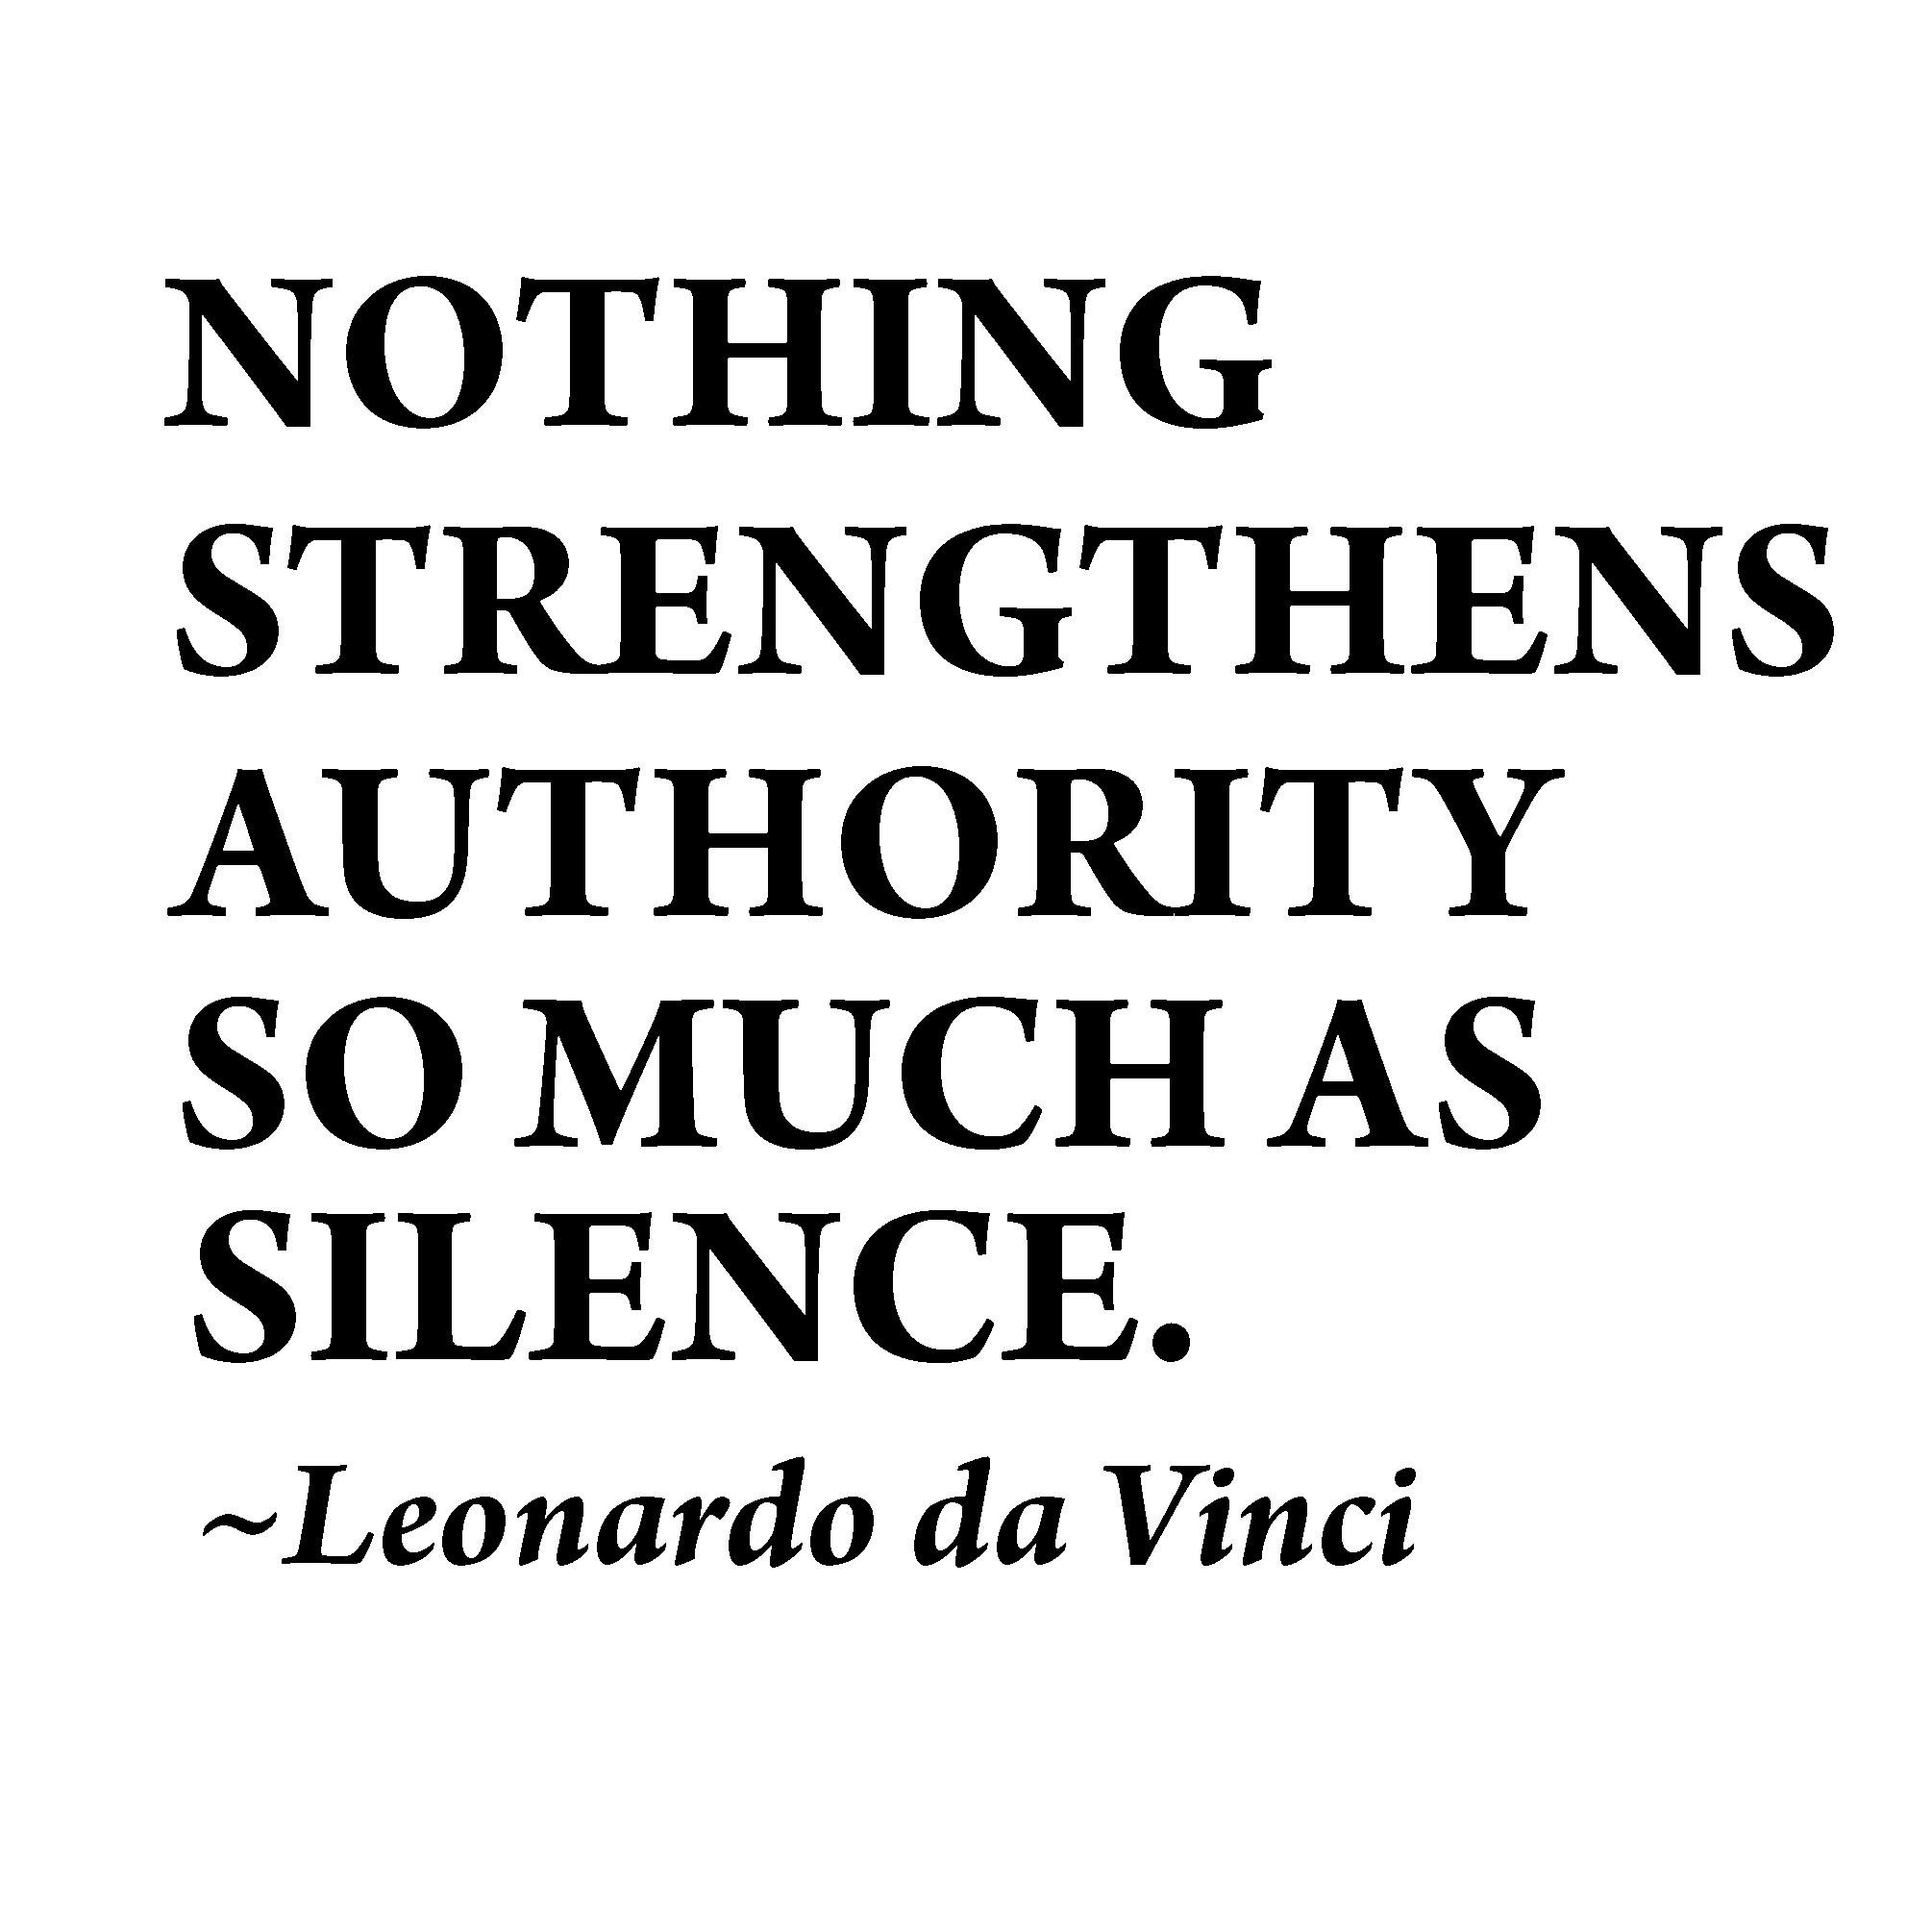 Quotes About Anger And Rage: Quotes On Silence And Truth. QuotesGram